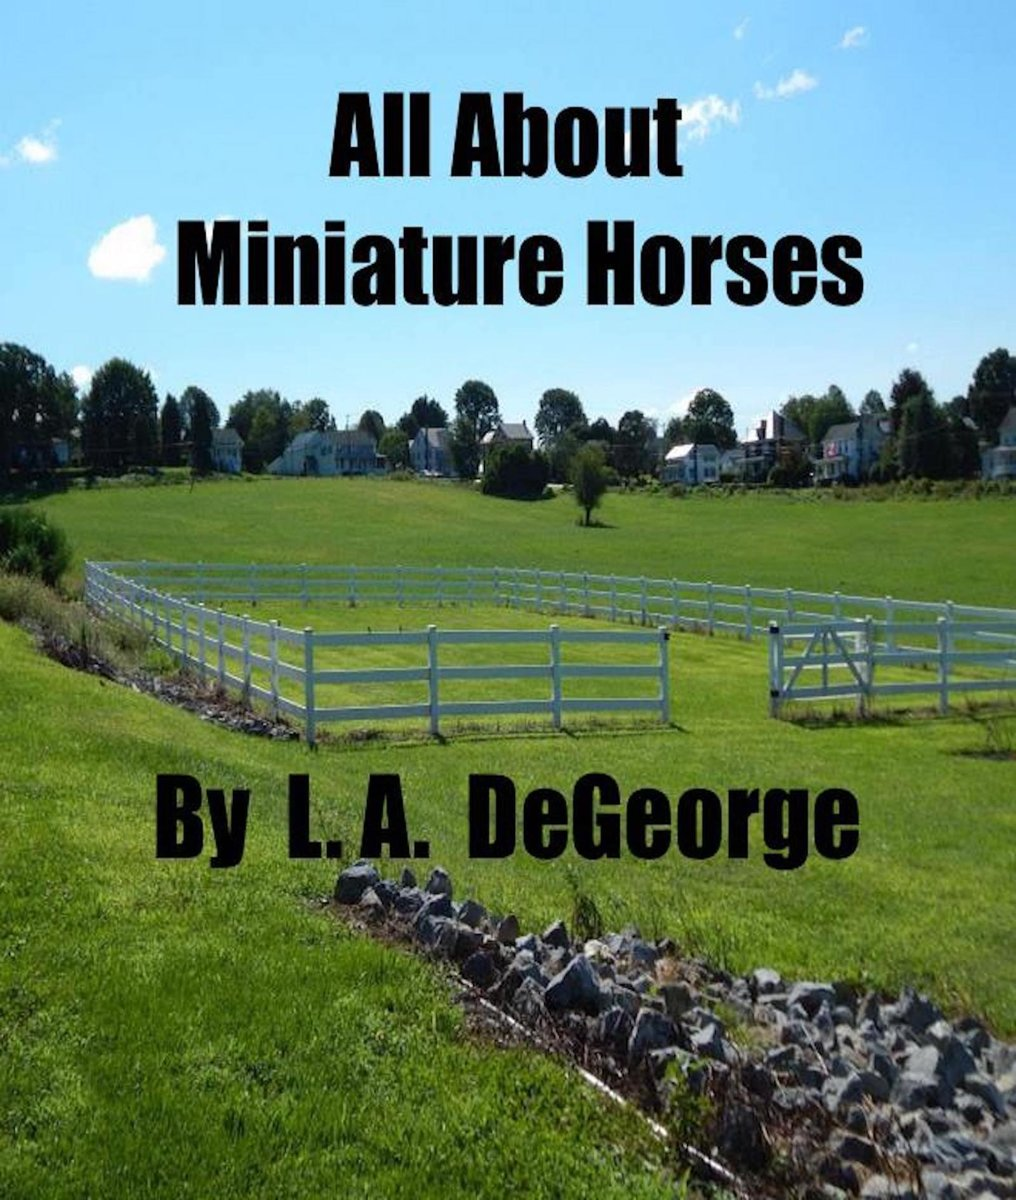 All About Miniature Horses